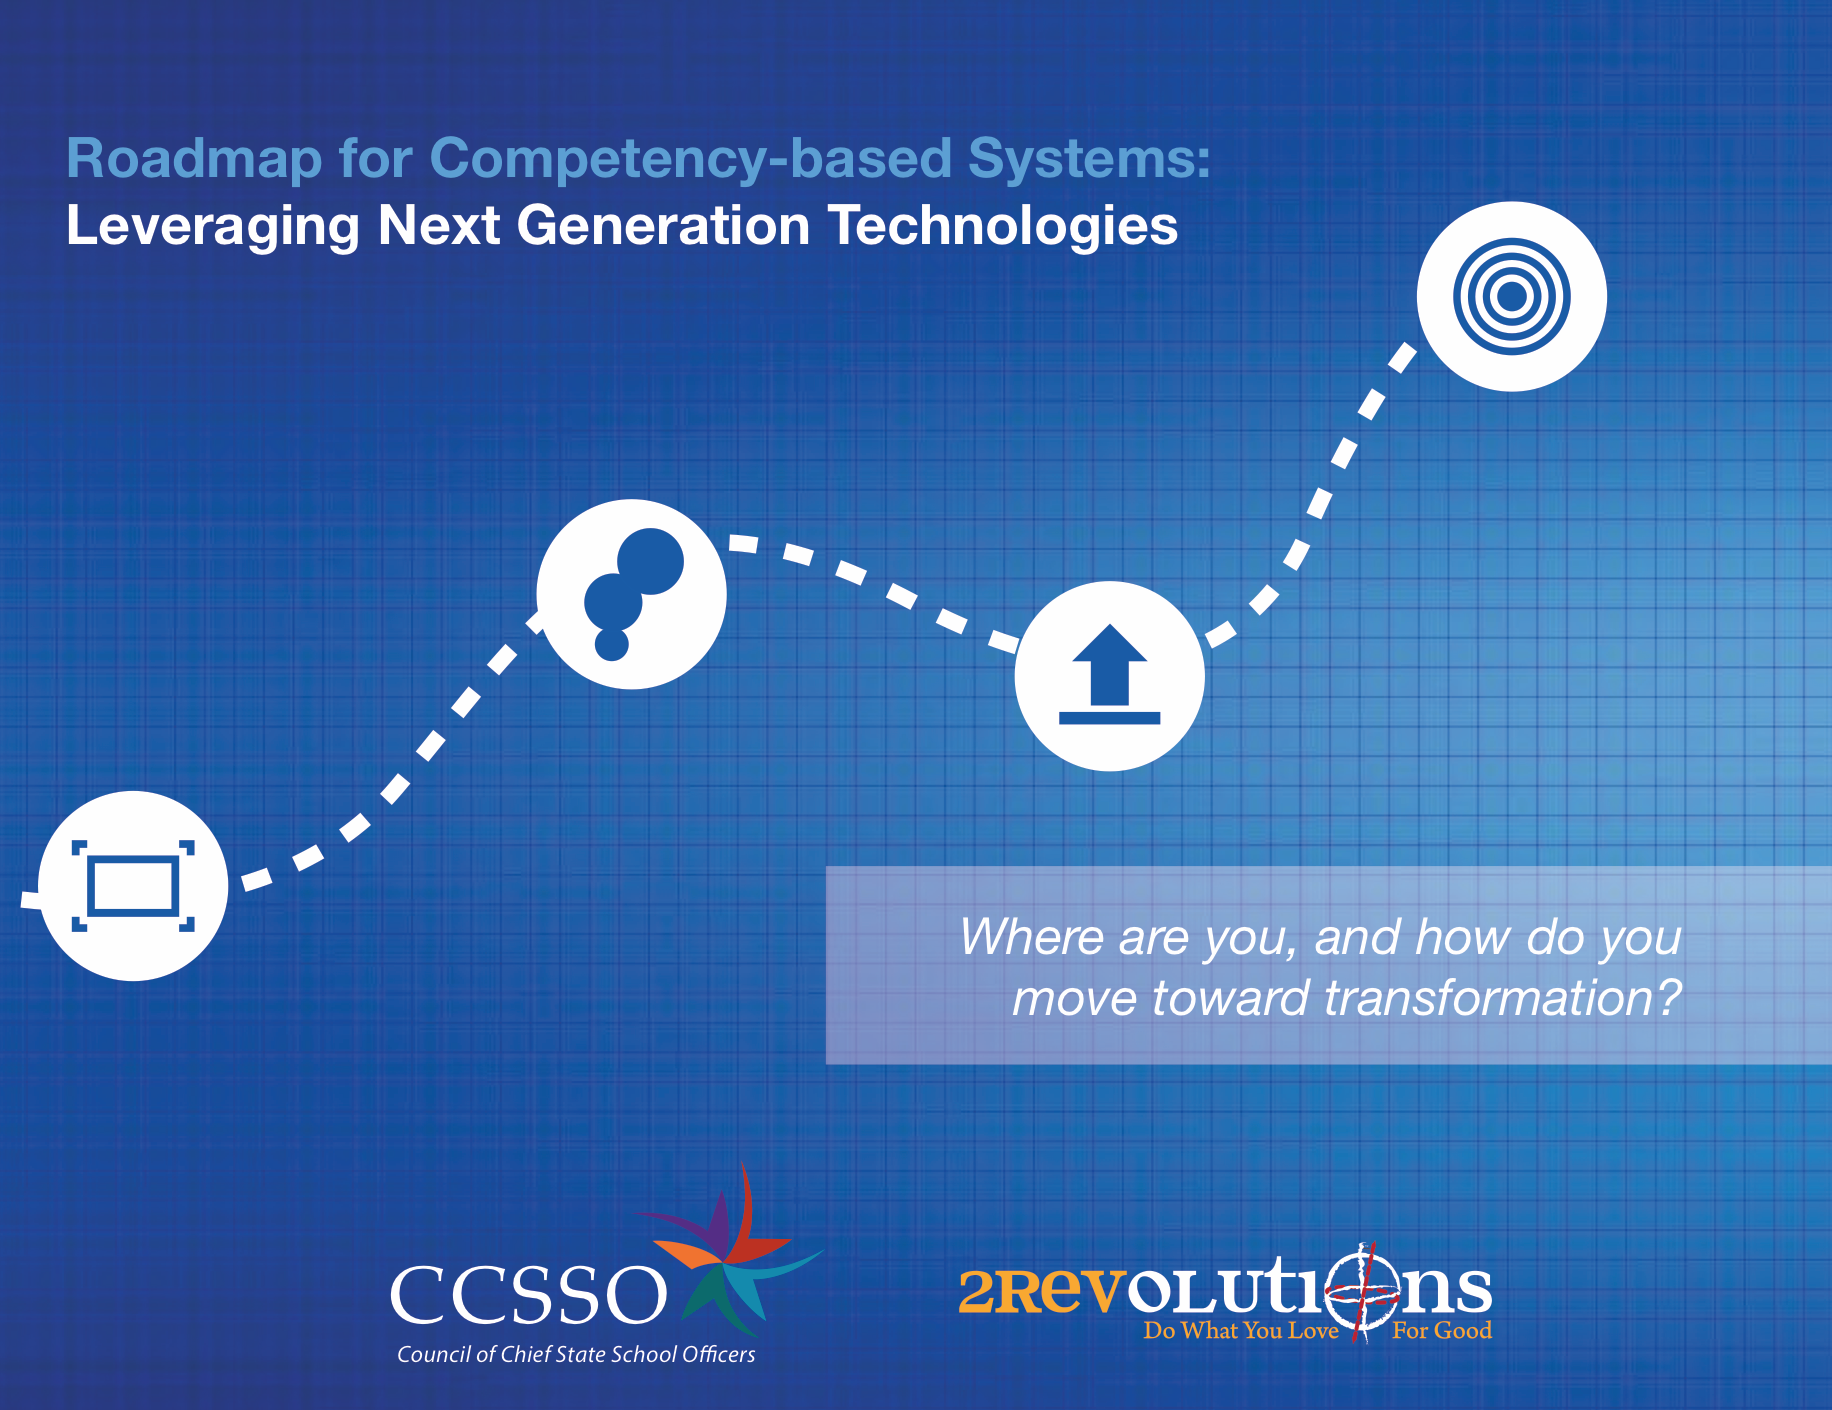 roadmap for competency-based systems pdf, january 2014.  or view as website